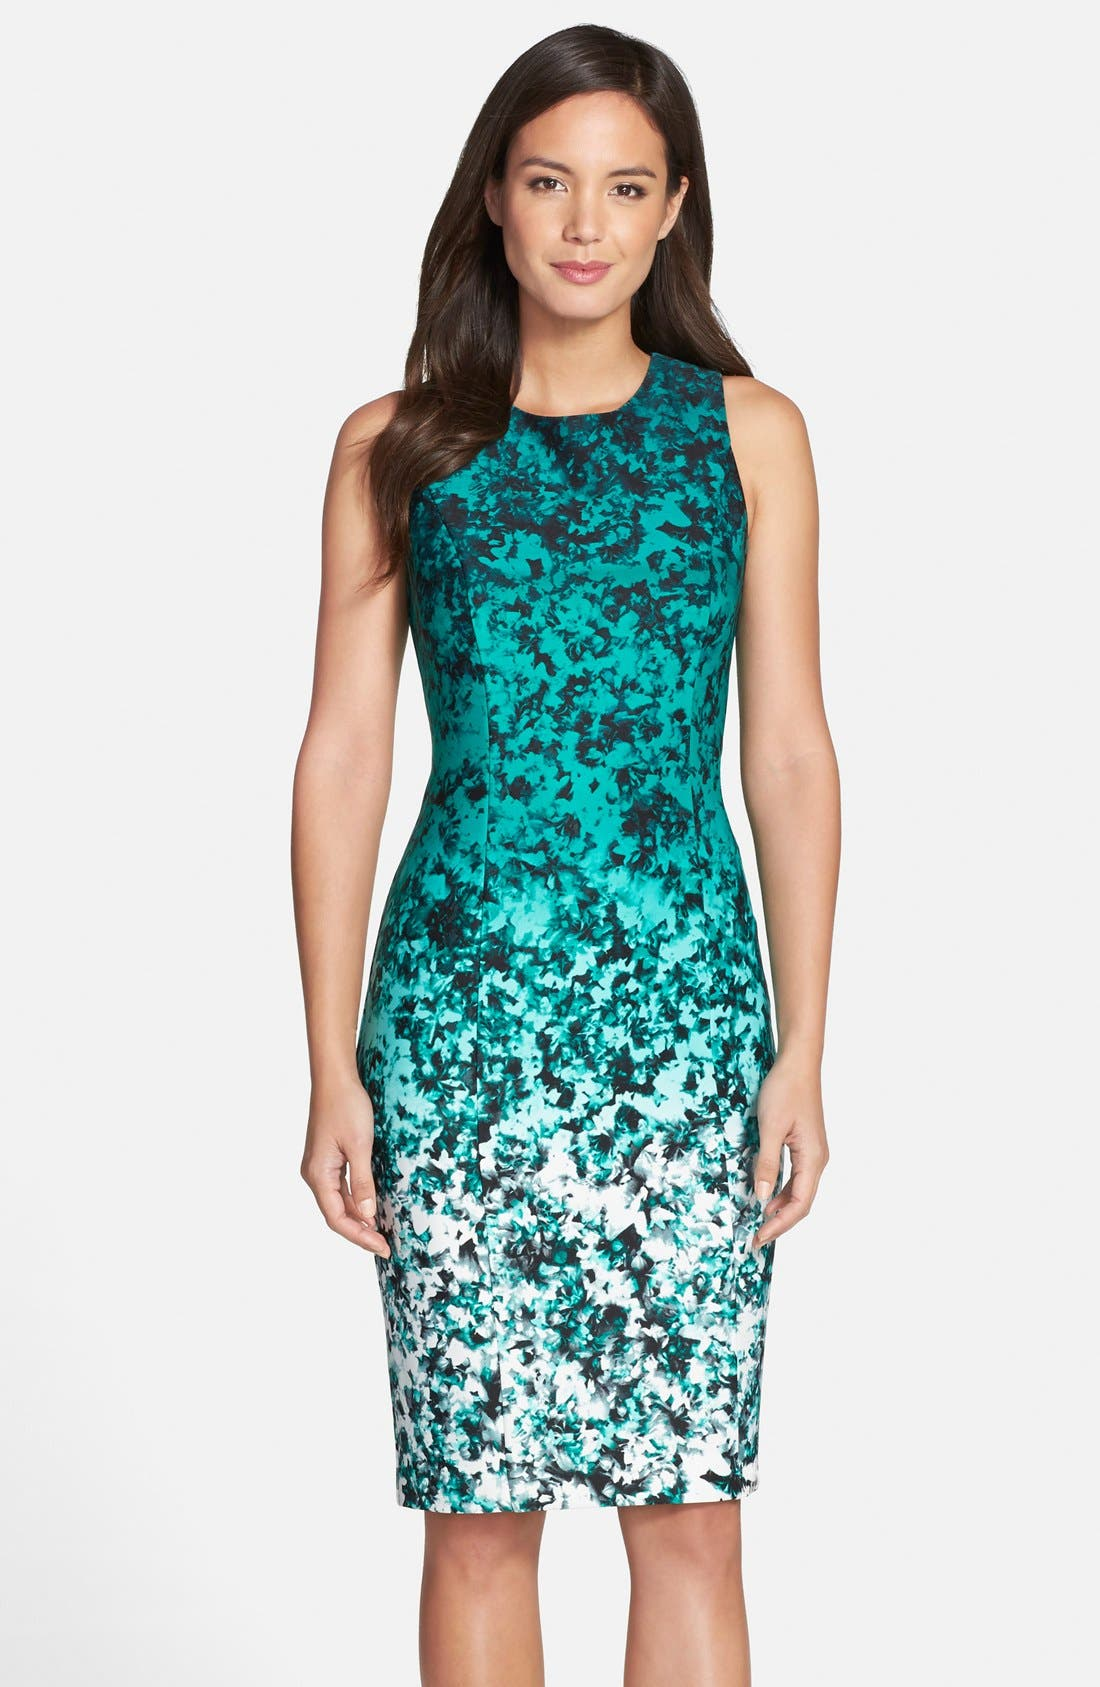 Ombré Floral Print Sleeveless Sheath Dress,                             Main thumbnail 1, color,                             310